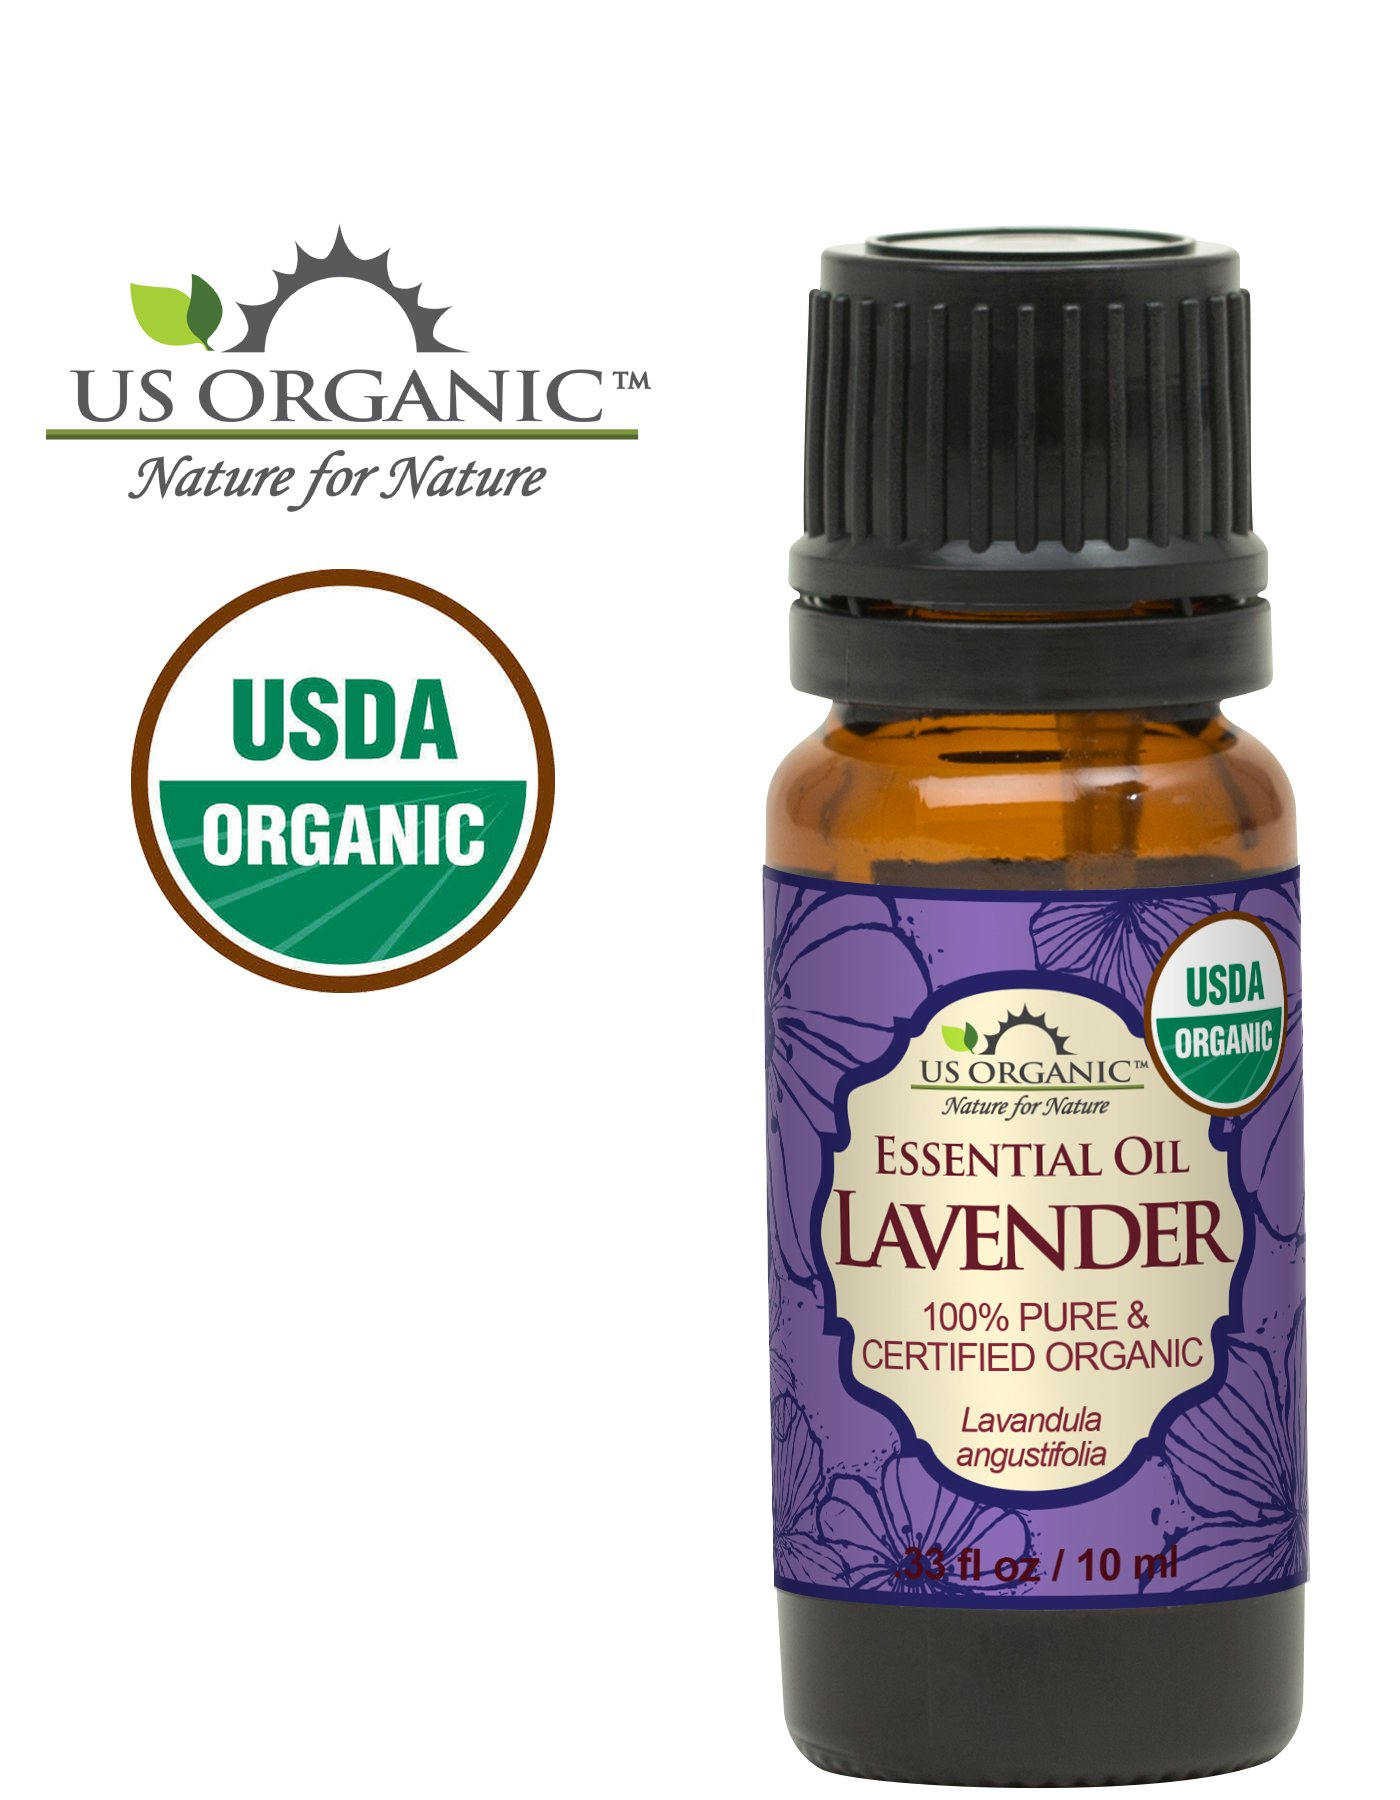 US Organic 100% Pure Lavender Essential Oil (Bulgarian) - USDA Certified Organic - 10 ml - w/Improved caps and droppers (More Size Variations Available)